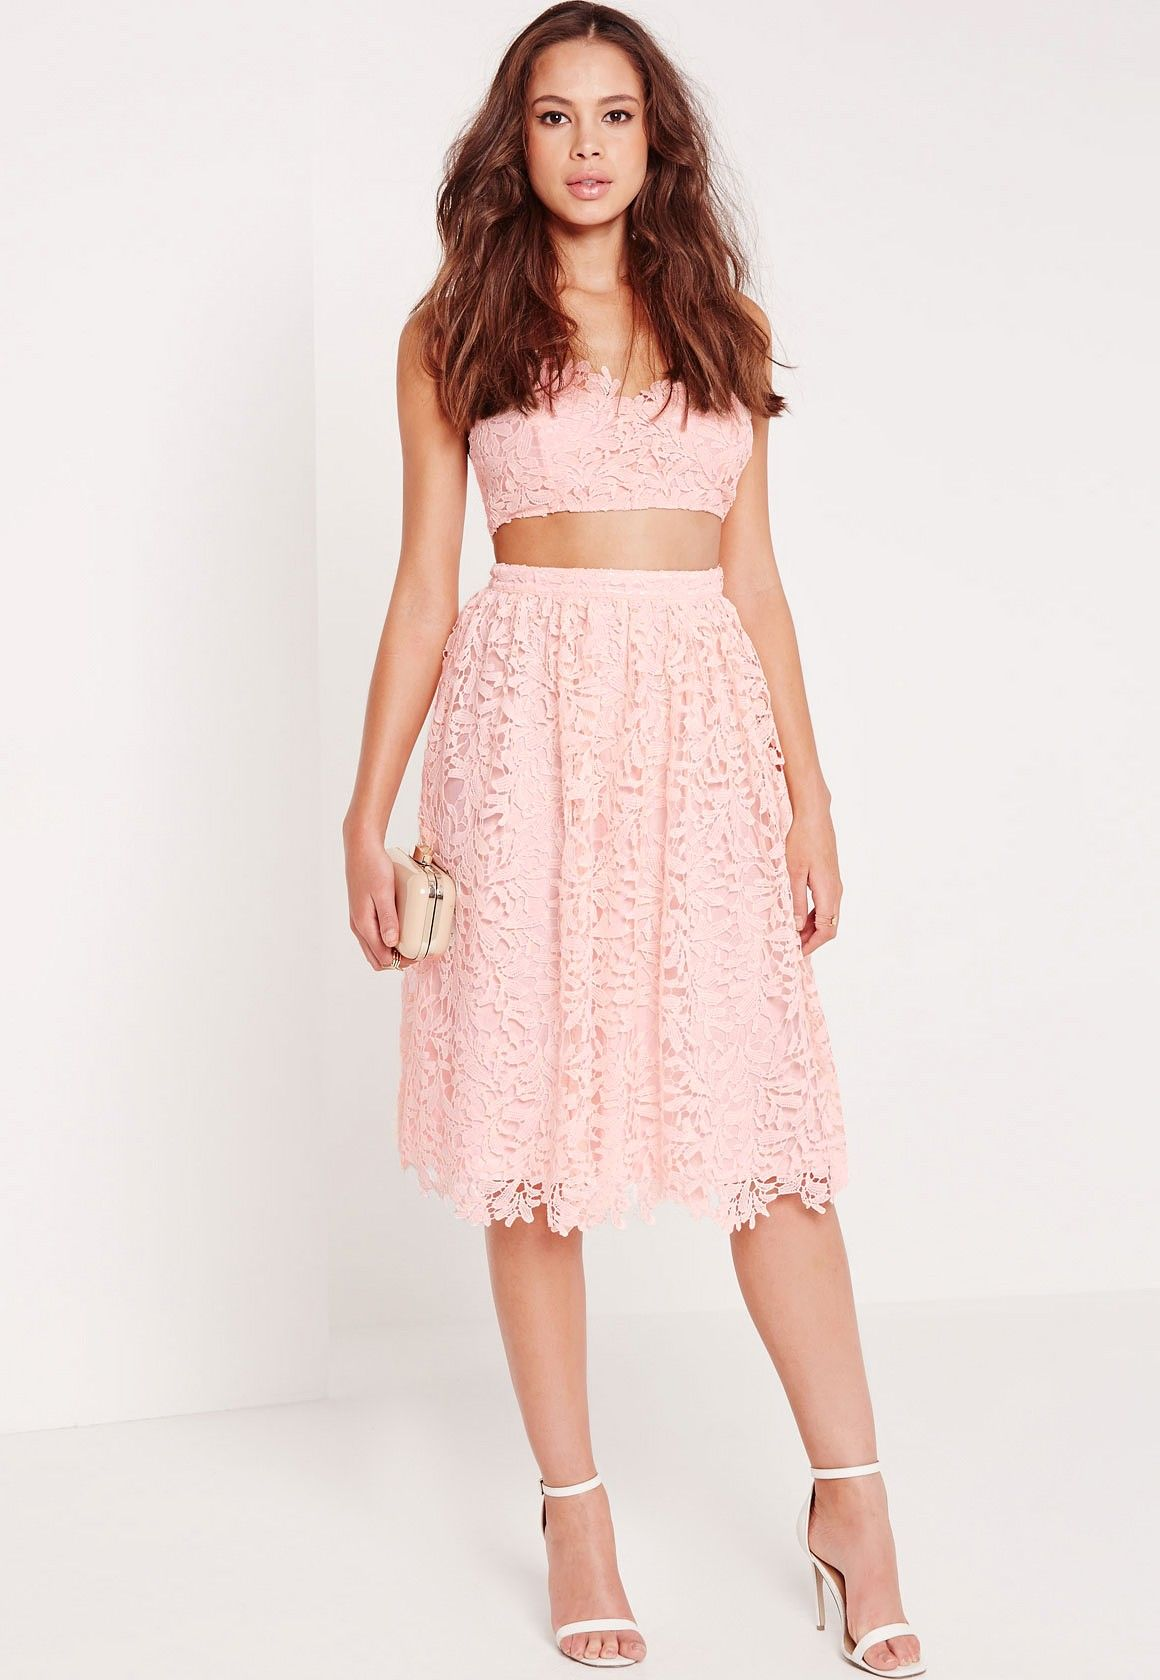 71655975f0 Missguided - Crochet Lace Full Midi Skirt Pink   2016 Holiday ...